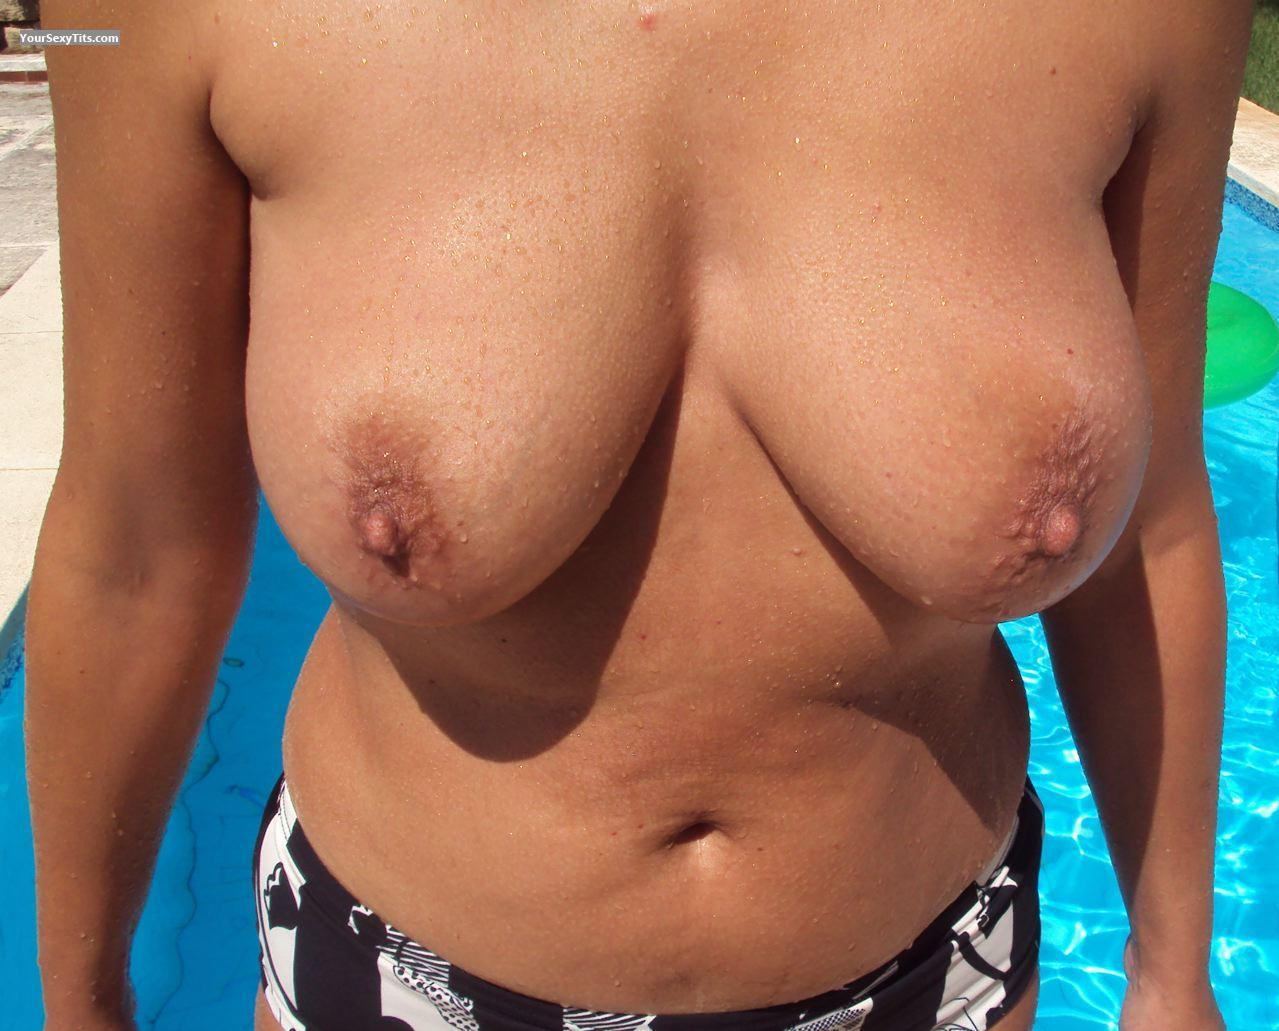 Tit Flash: Big Tits - Pretty Woman from Belgium